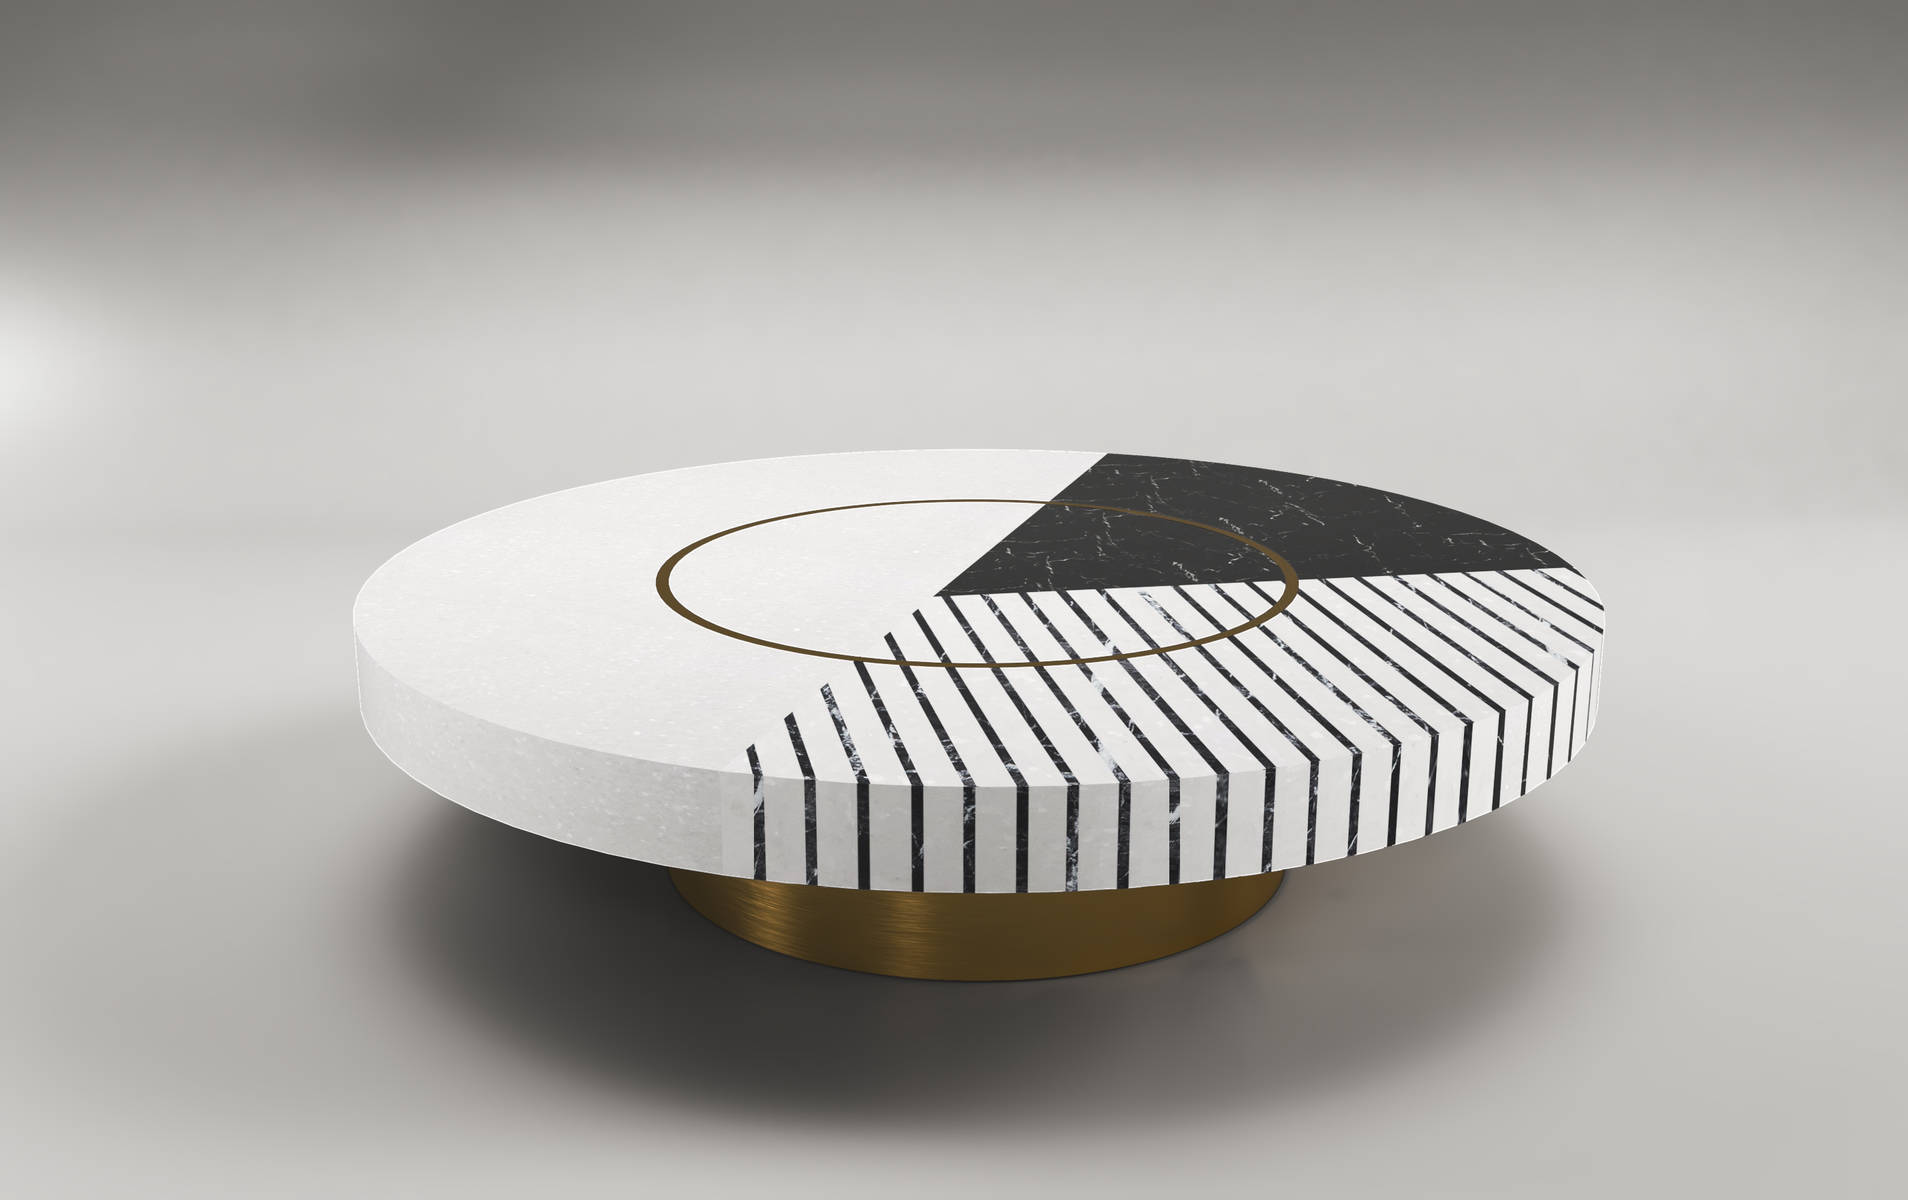 Galerie BSL's Amazing Contemporary Design Collection at PAD Paris 2019 - Isabelle Stanislas - Coffee Table bsl BSL Gallery's Amazing Contemporary Design Collection at PAD Paris 2019 Galerie BSLs Amazing Contemporary Design Collection at PAD Paris 2019 Isabelle Stanislas Coffee Table